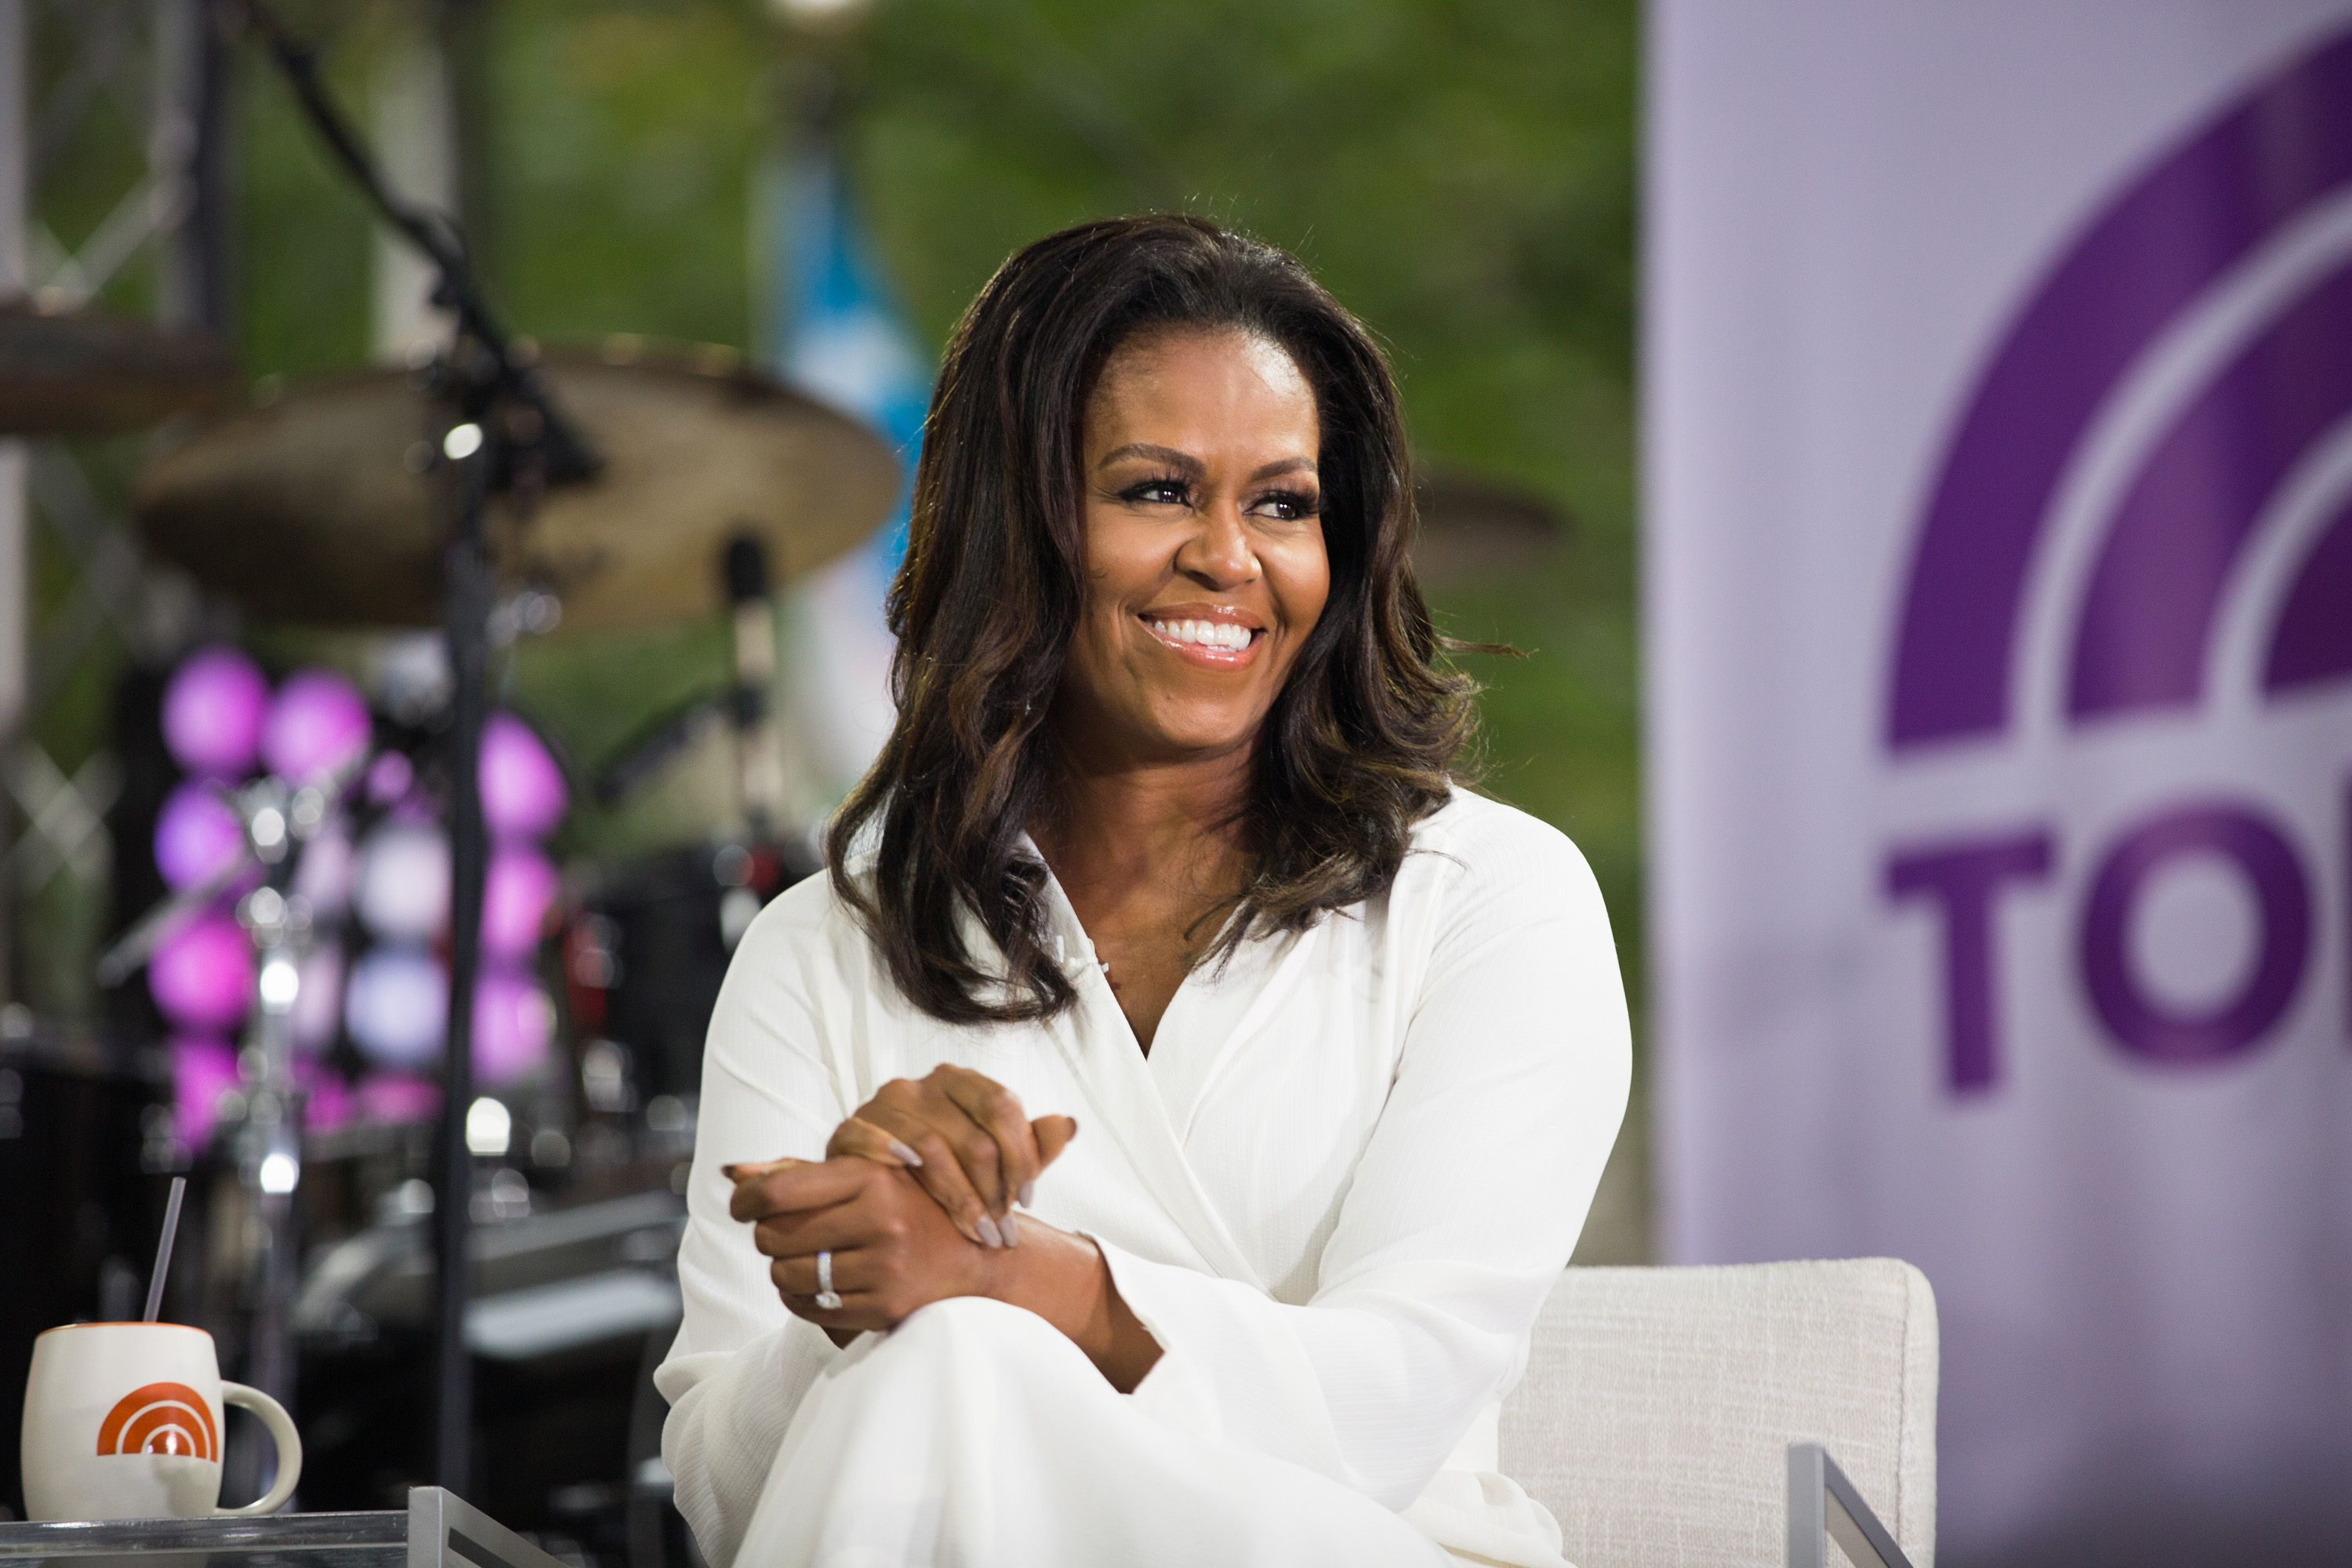 Michelle Obama's workout playlist is the January motivation we all need